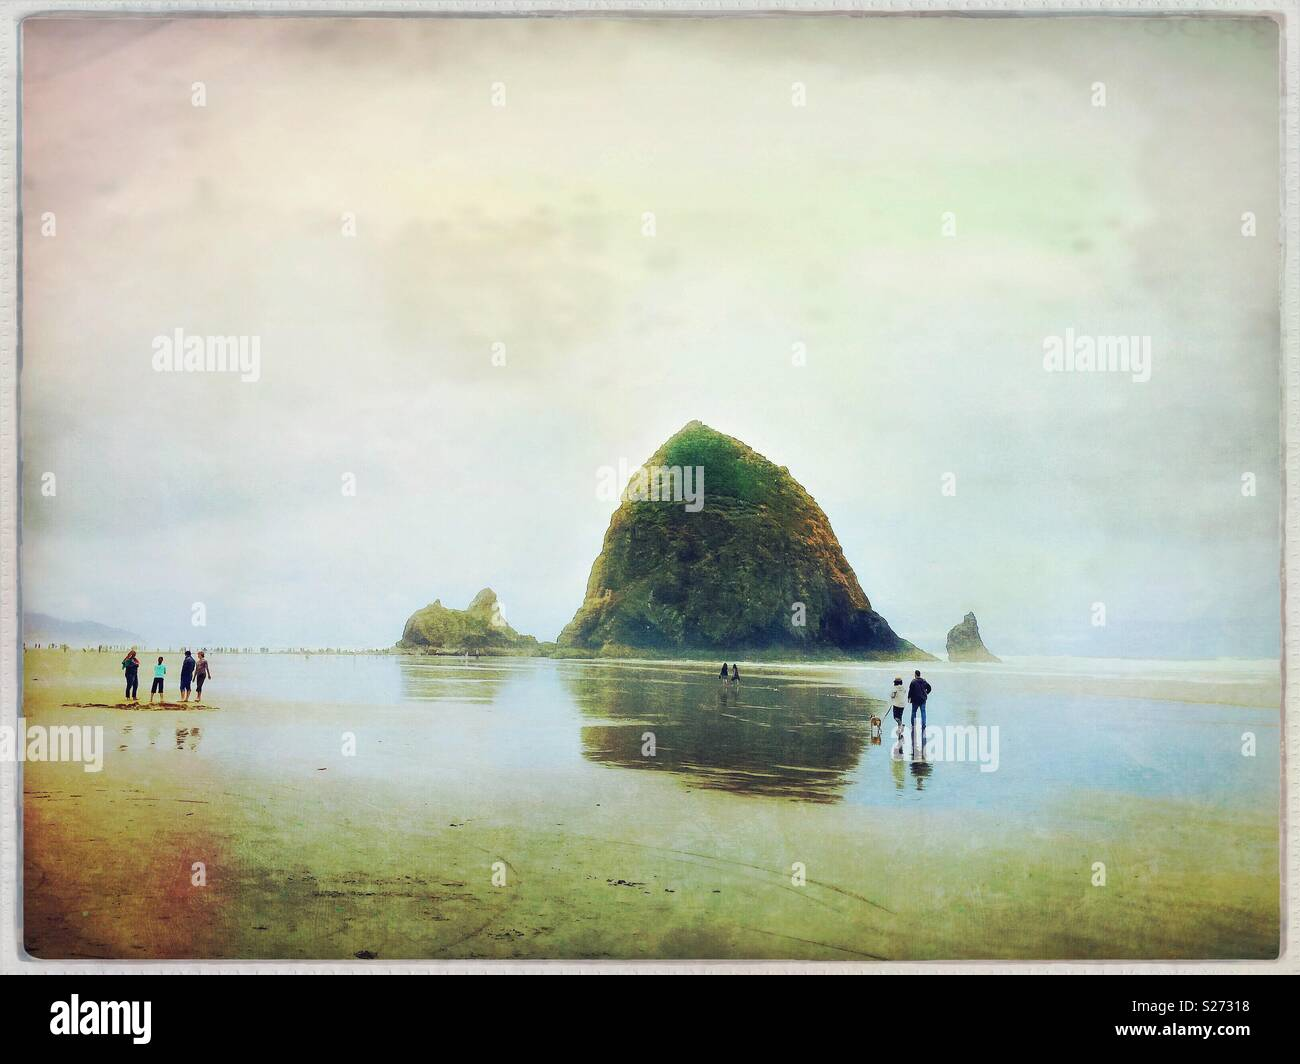 The Haystack Rock with wanderers along the beach, Cannon Beach, Oregon, USA. - Stock Image